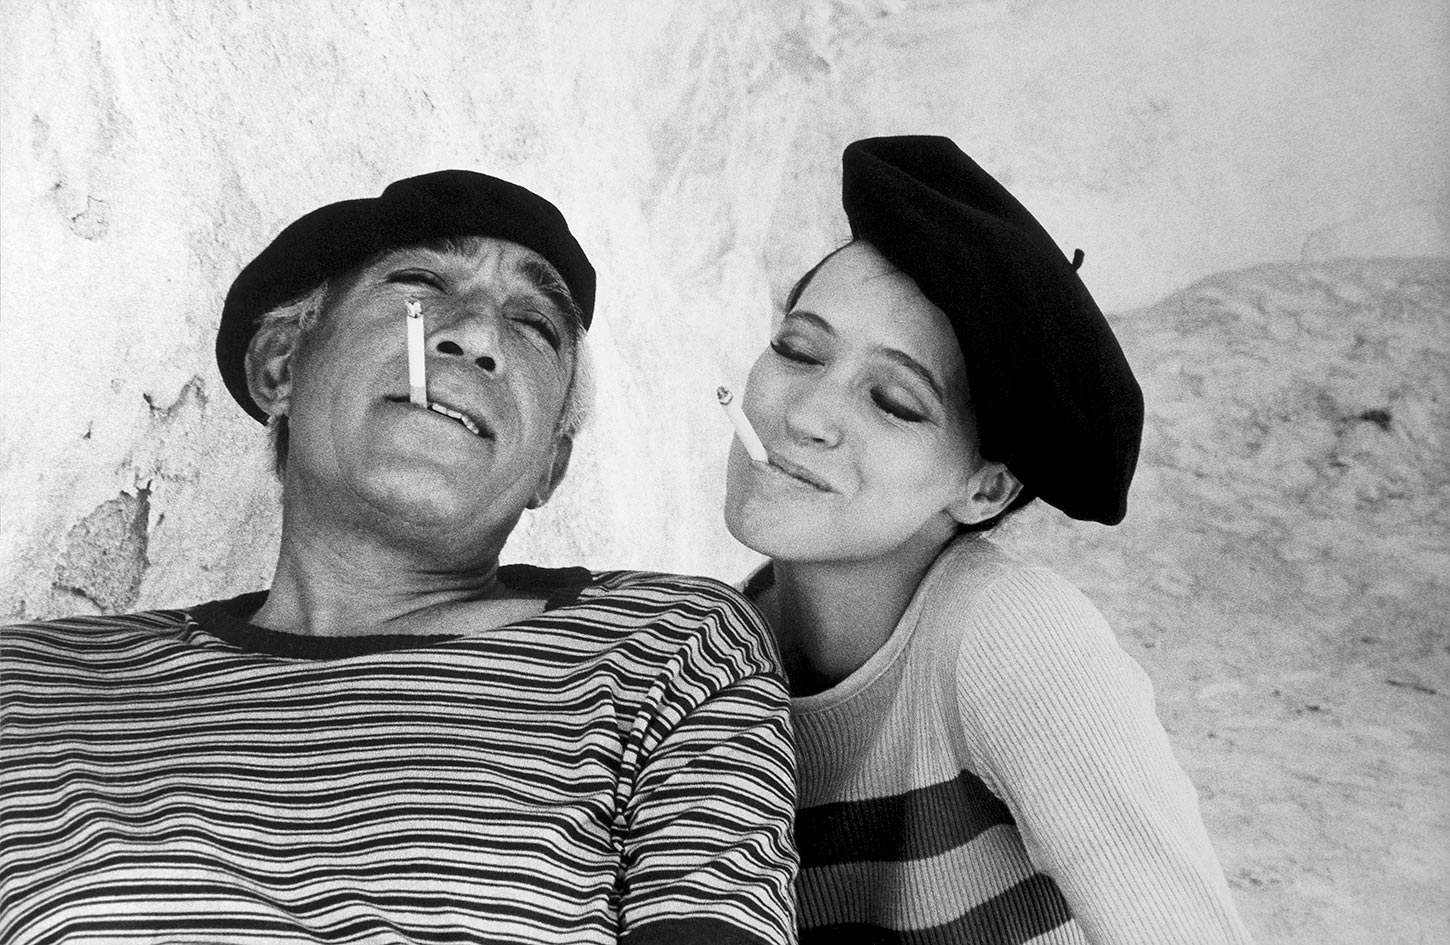 Anthony Quinn and Anna Karina on the set of The Magus. Mallorca, Spain. 1976.